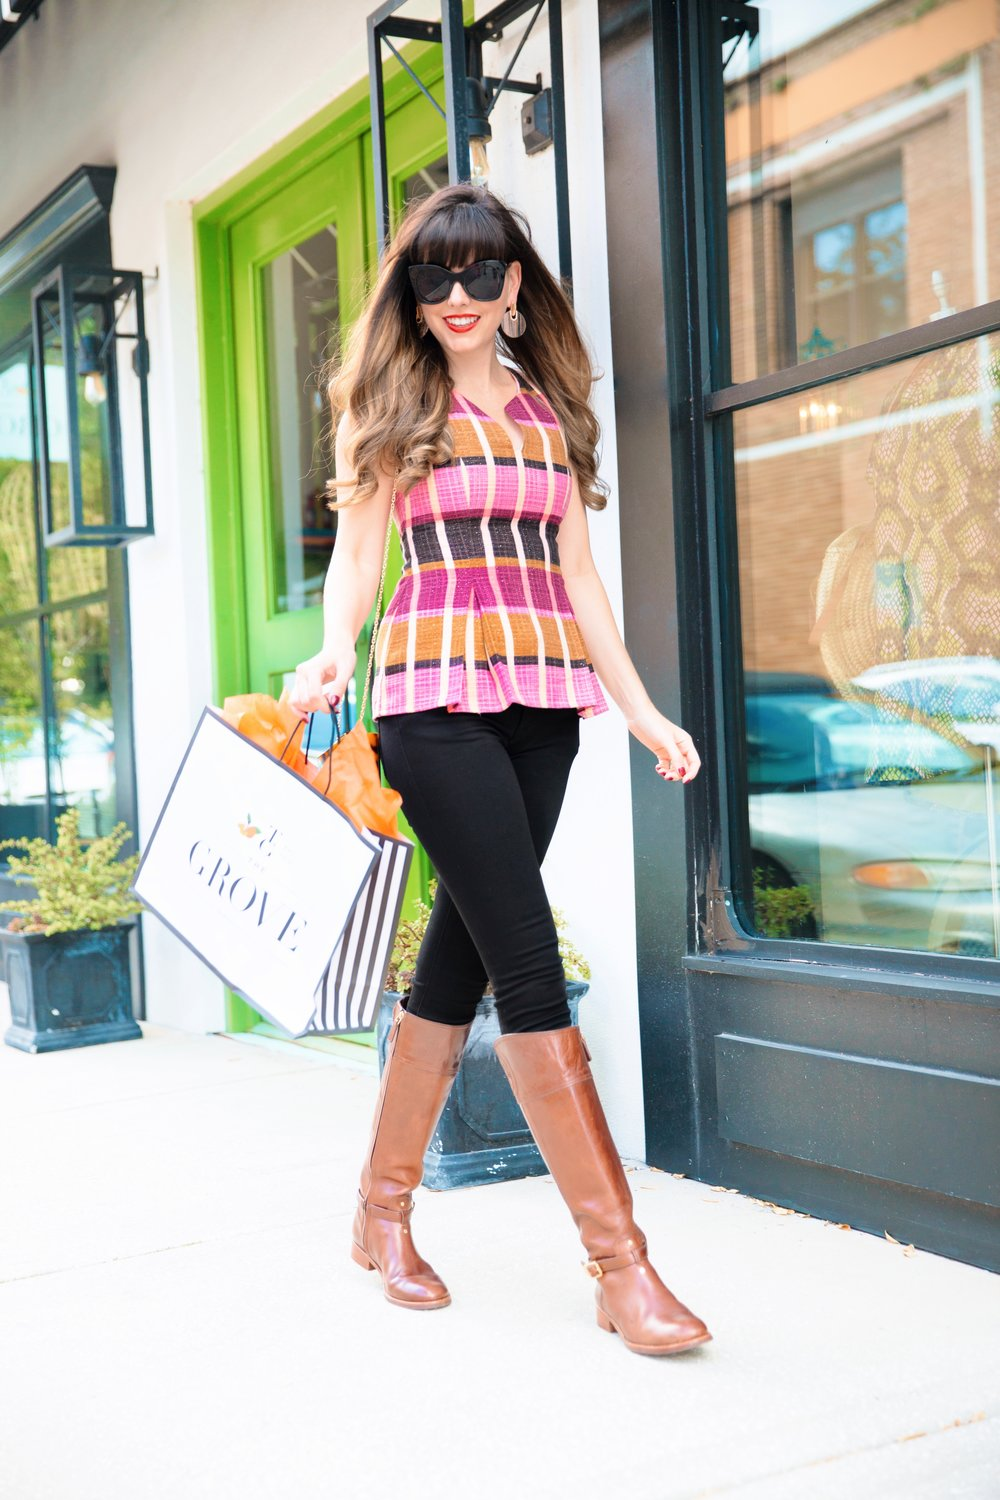 The grove boutique fall outfit inspo.JPG